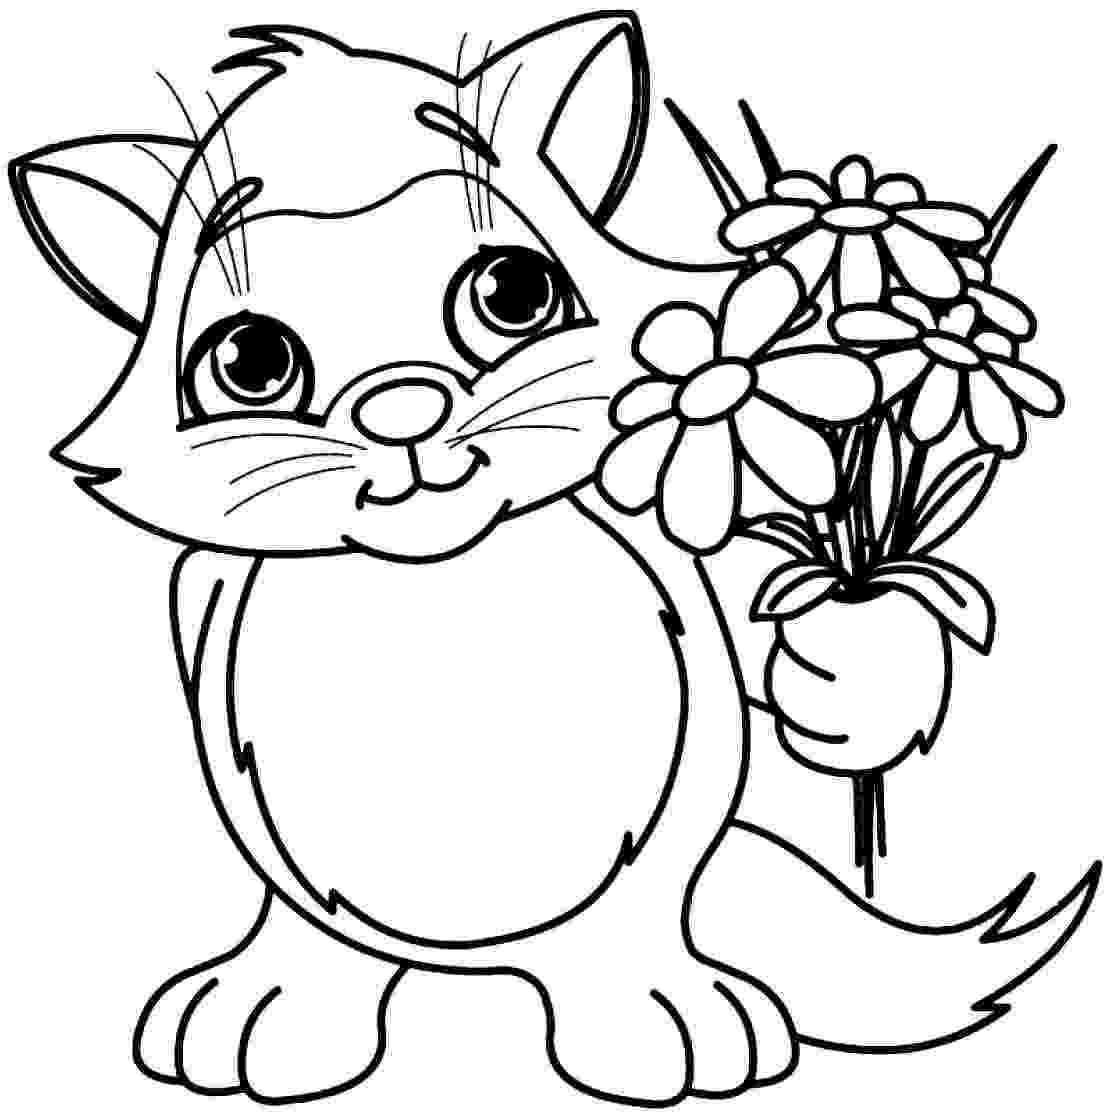 printable flower coloring pages pin by hema on drawing printable flower coloring pages flower coloring printable pages